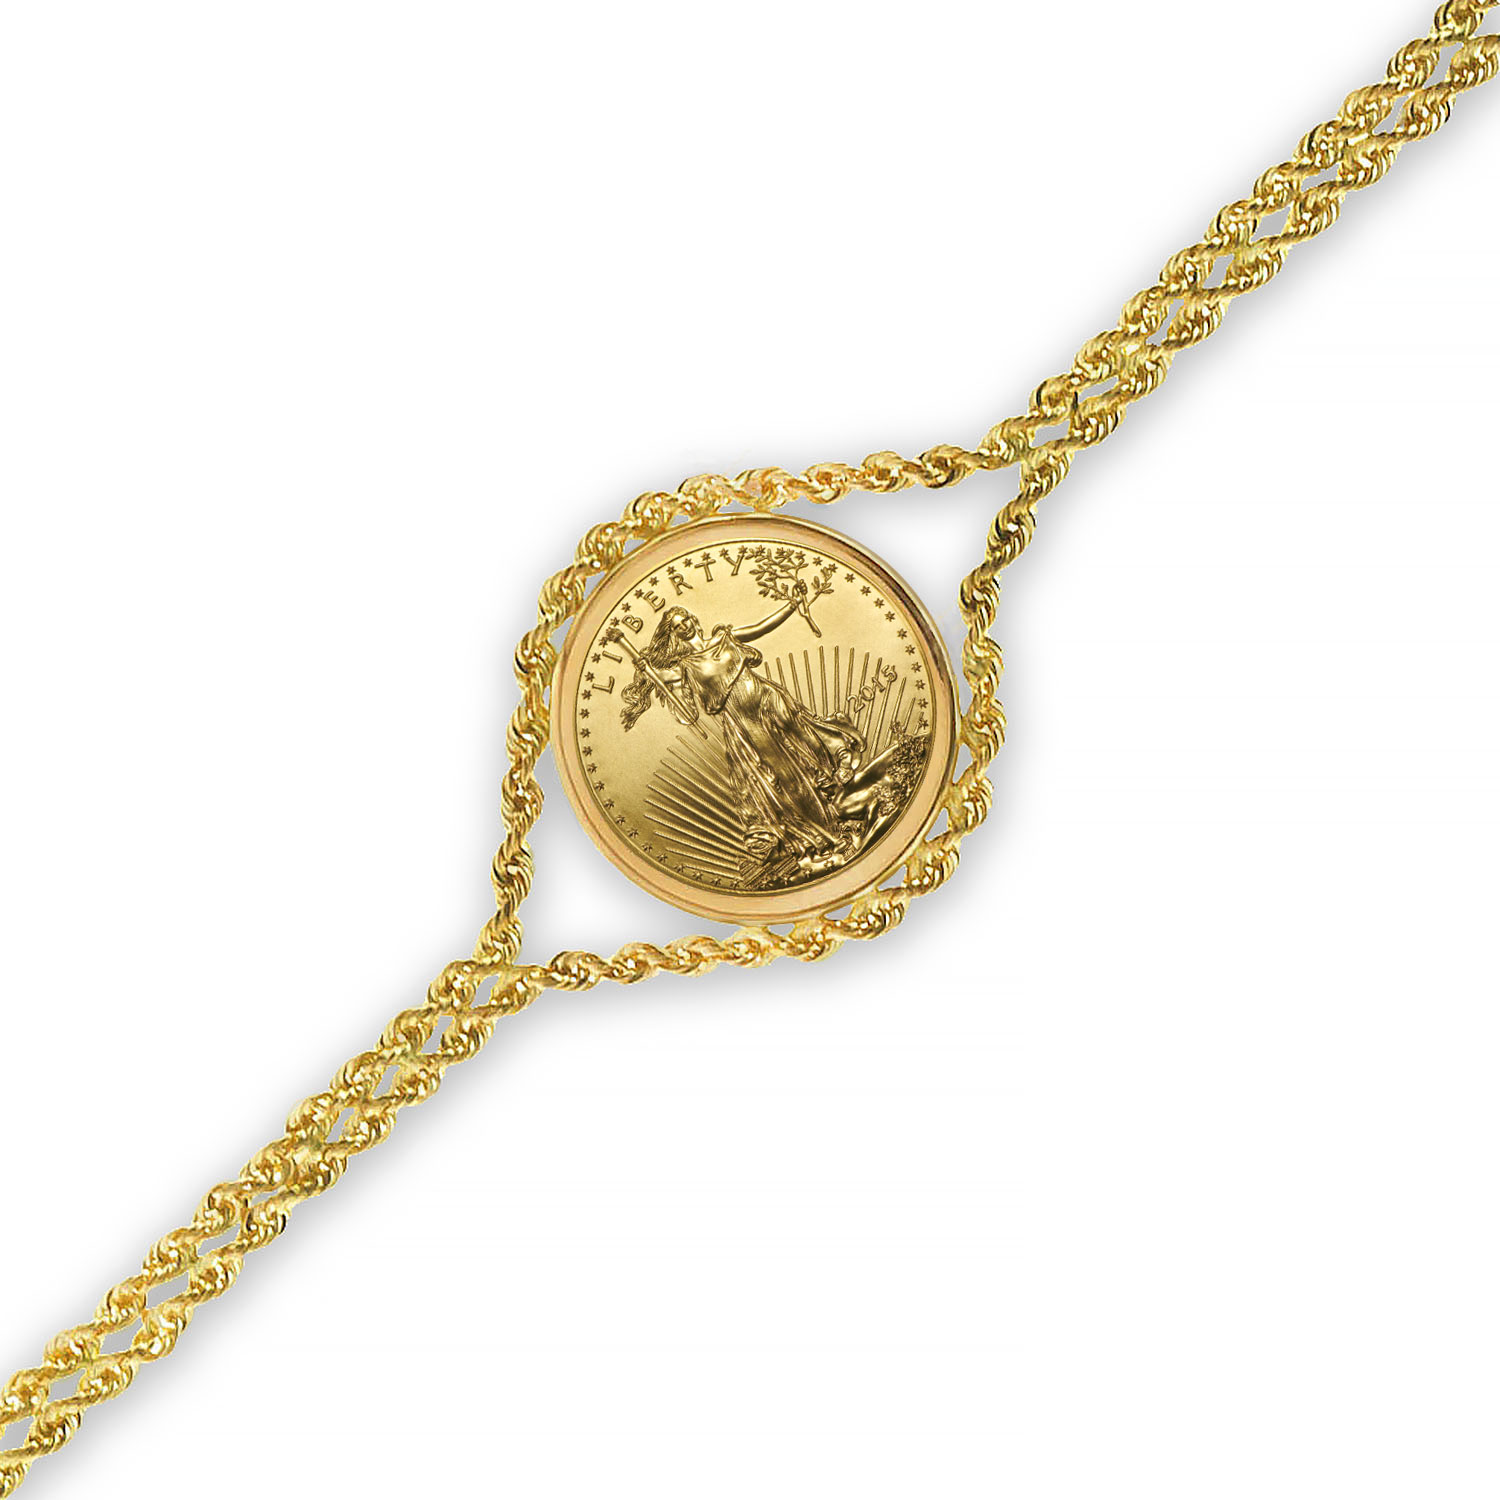 2015 1/10 oz Gold Eagle Bracelet (Polished Rope)